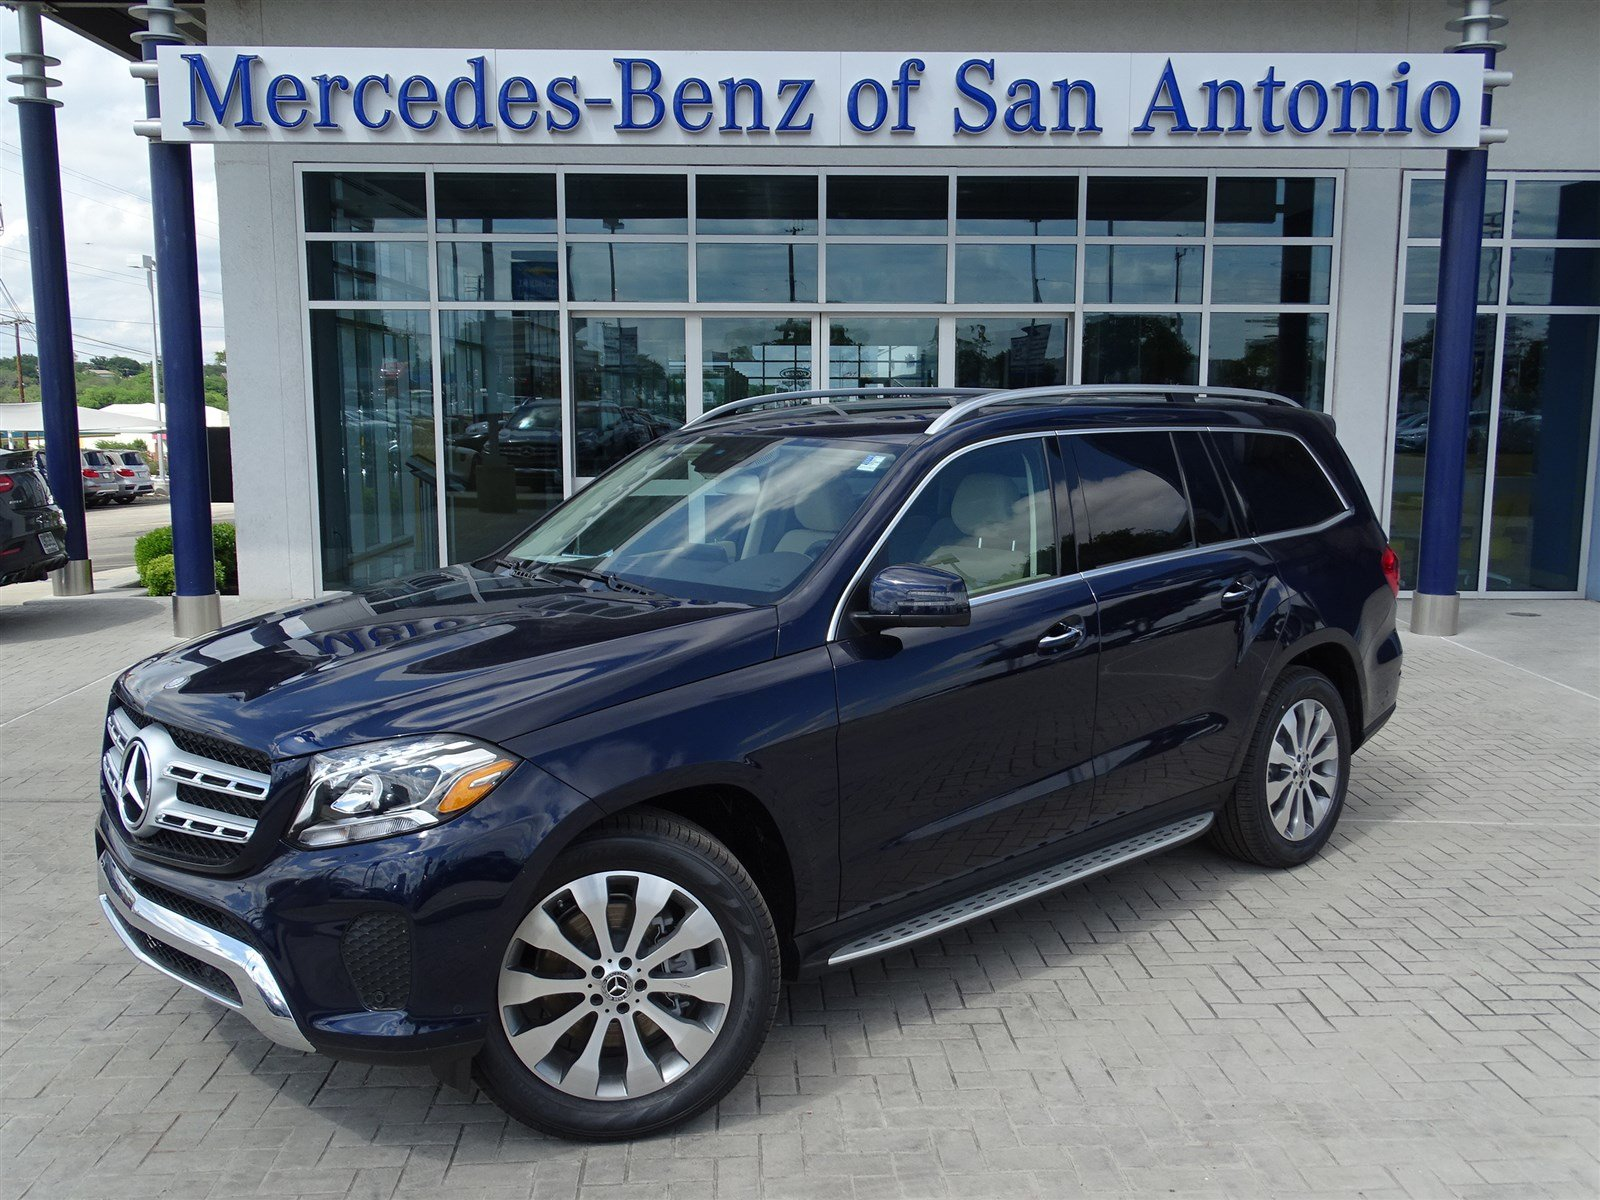 New 2017 mercedes benz gls gls 450 suv in san antonio for 2017 mercedes benz gls 450